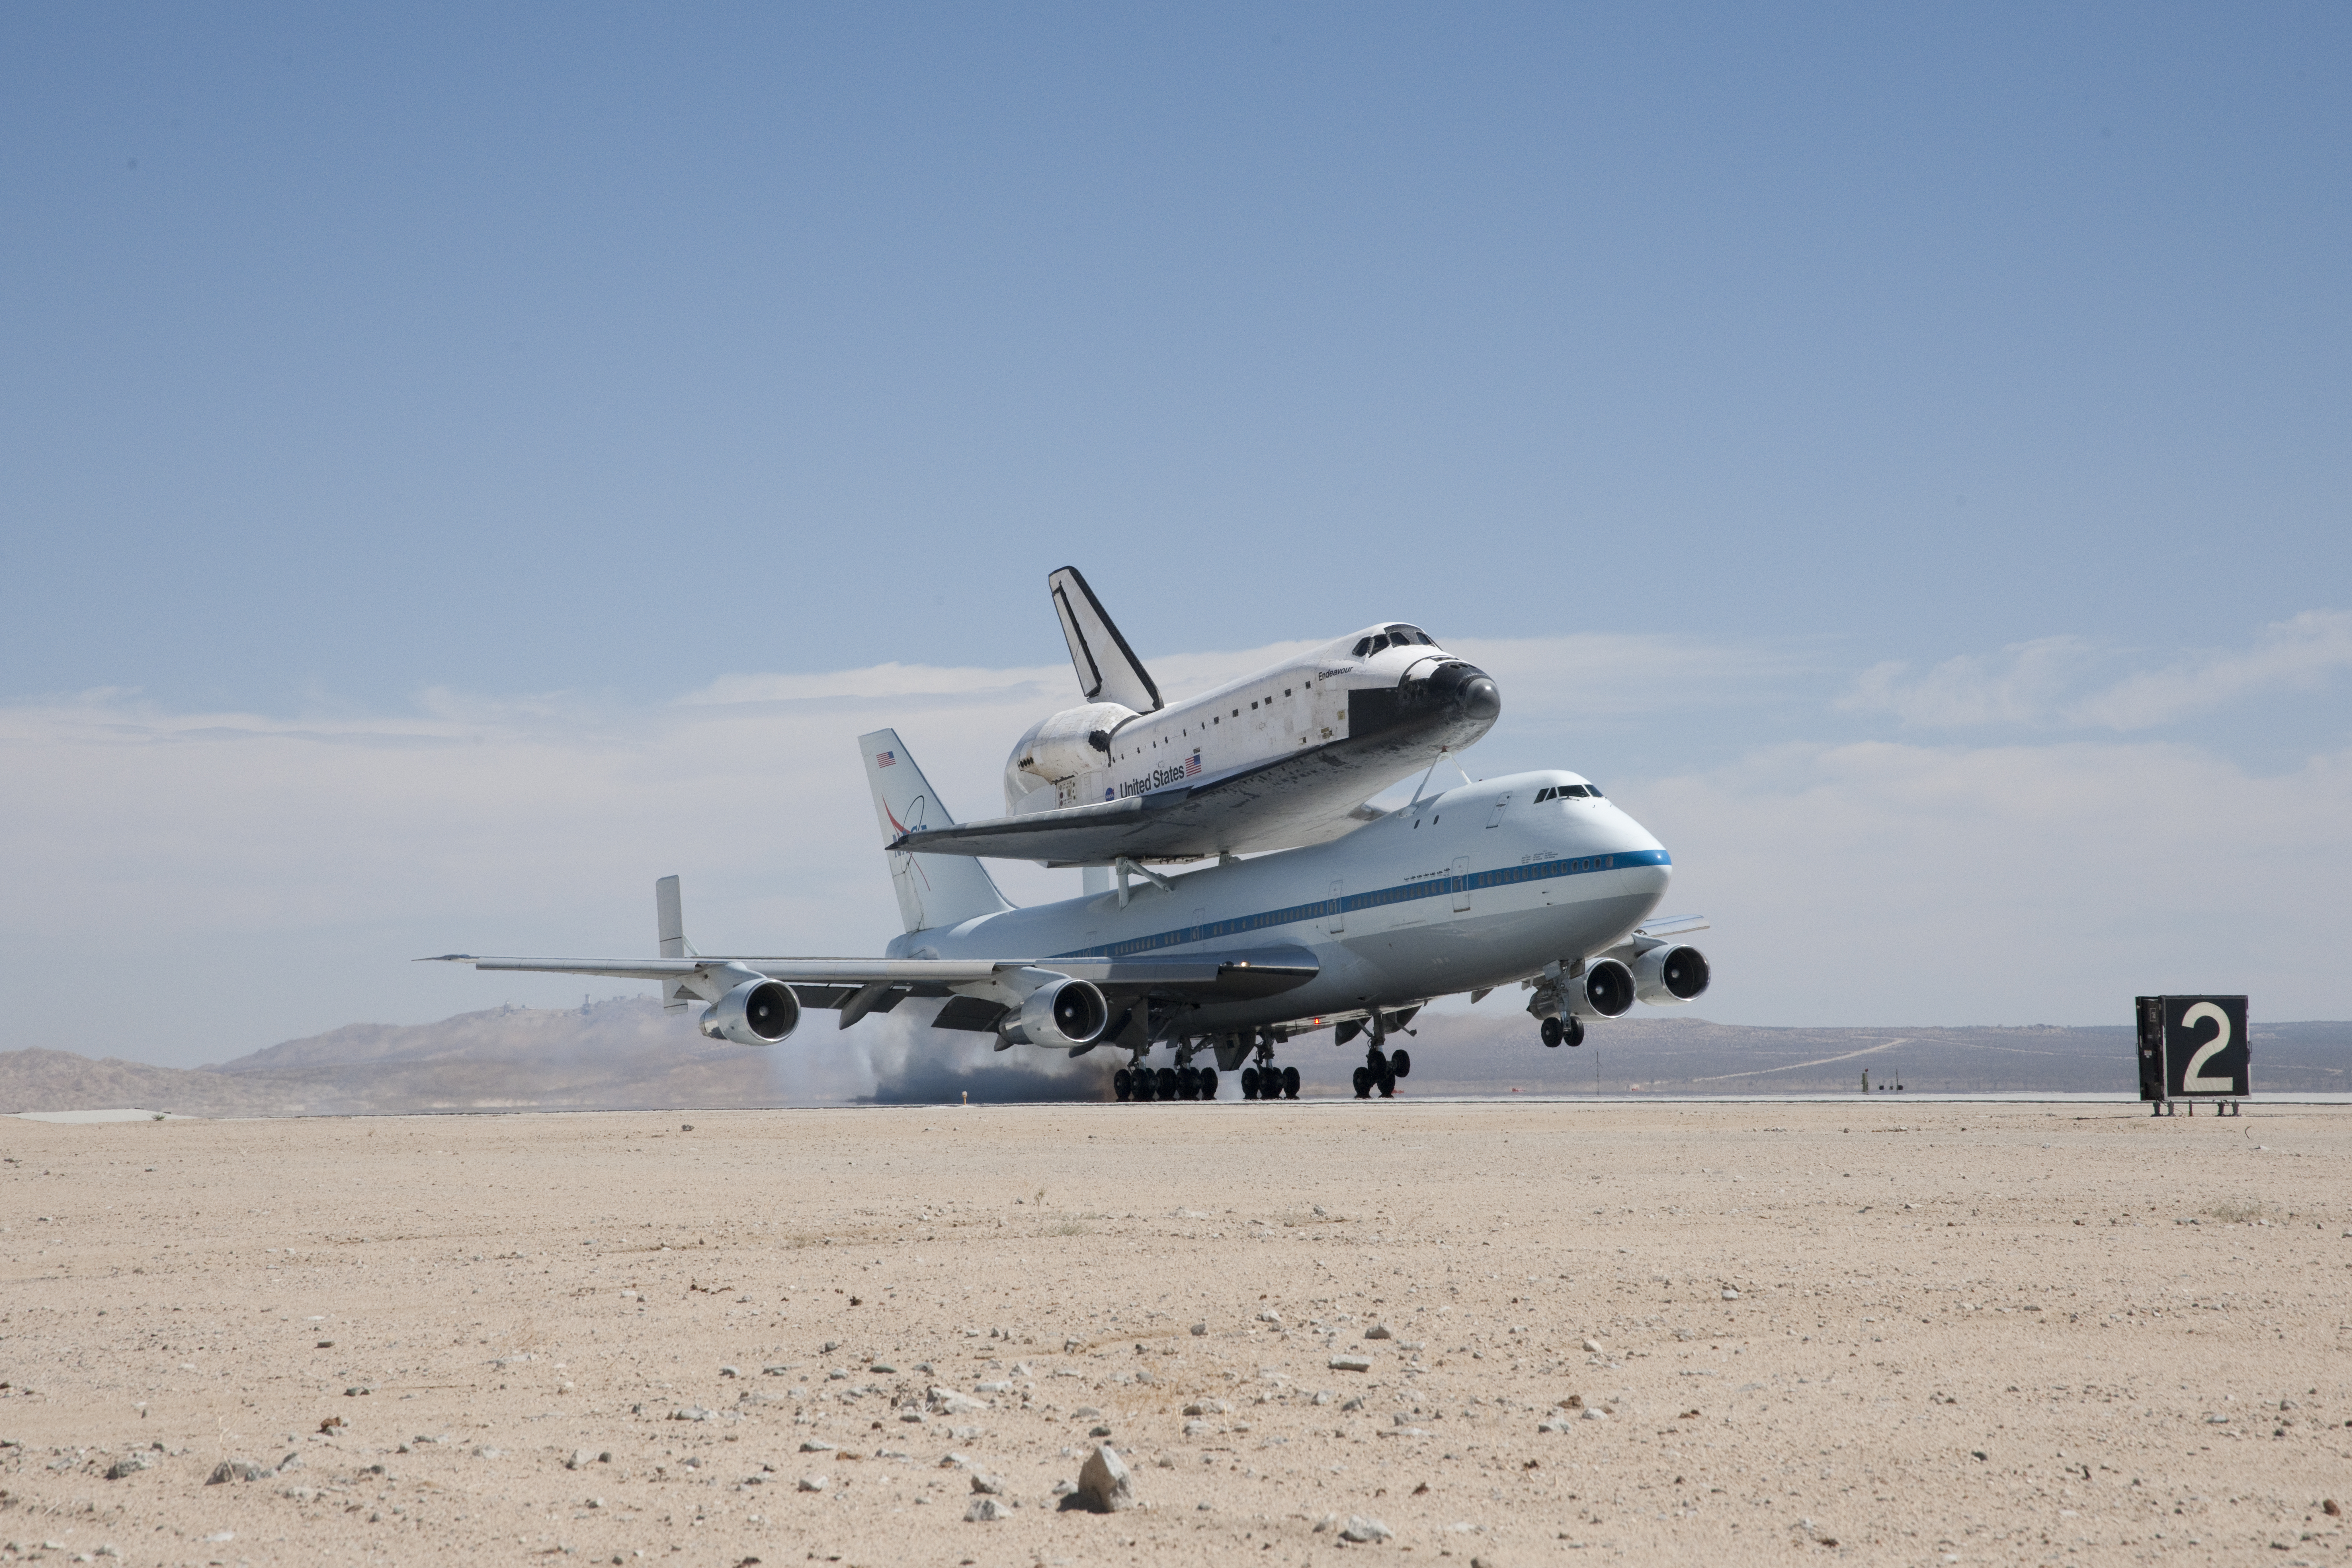 space shuttle usaf - photo #25